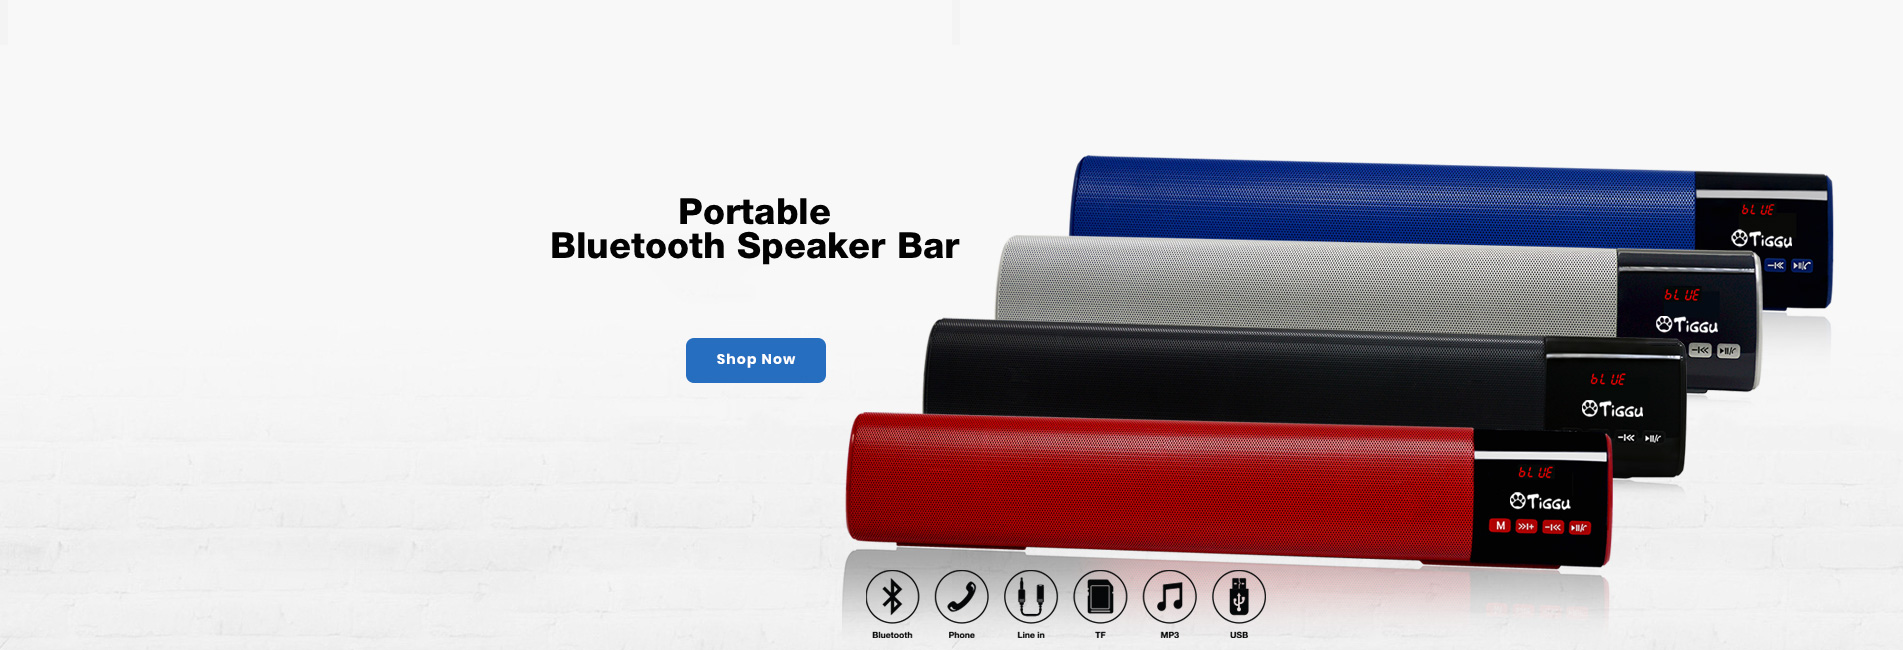 Portable Bluetooth Speaker Bar - TSP-01